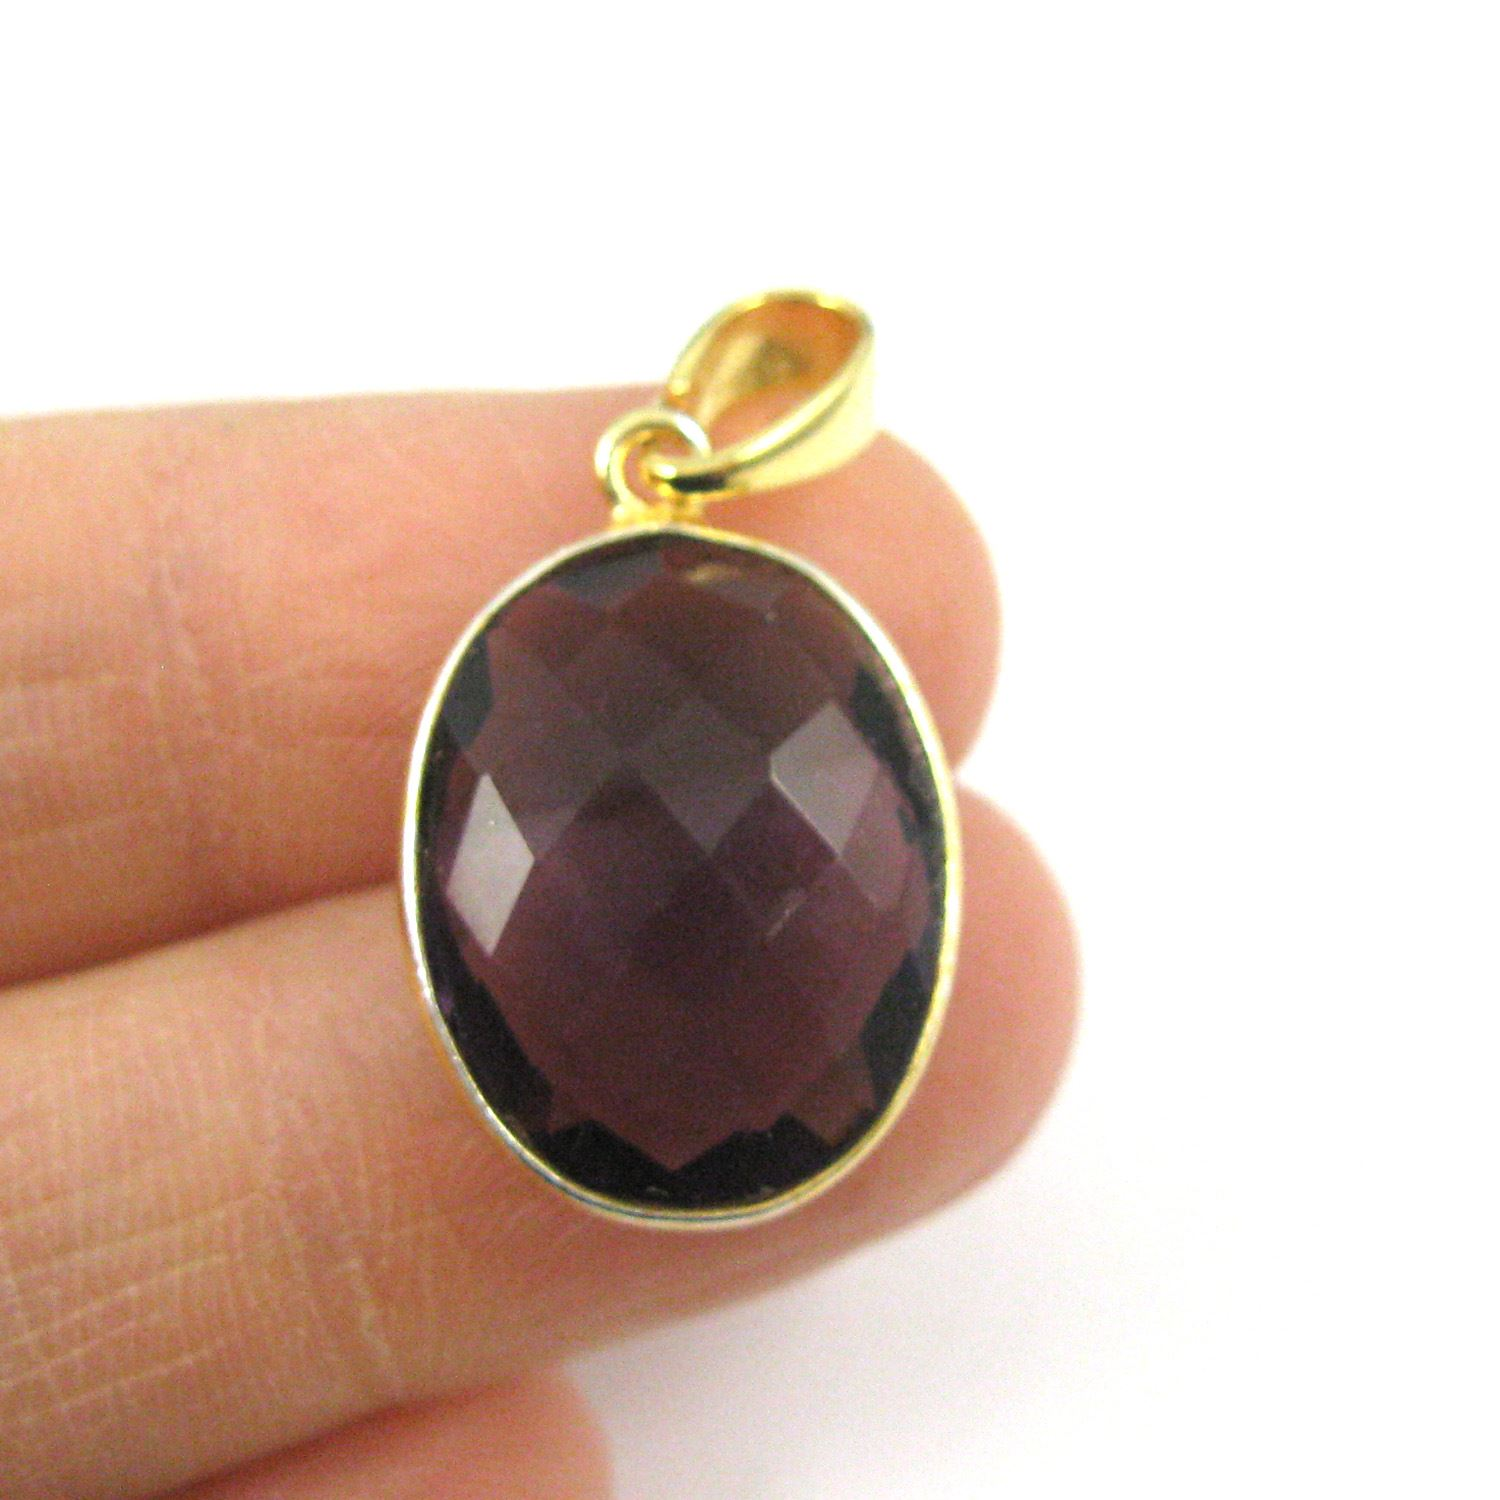 Bezel Gemstone Pendant with Bail - Gold plated Sterling Silver Oval Gem Pendant - Ready for Necklace - 28mm - Amethyst Quartz